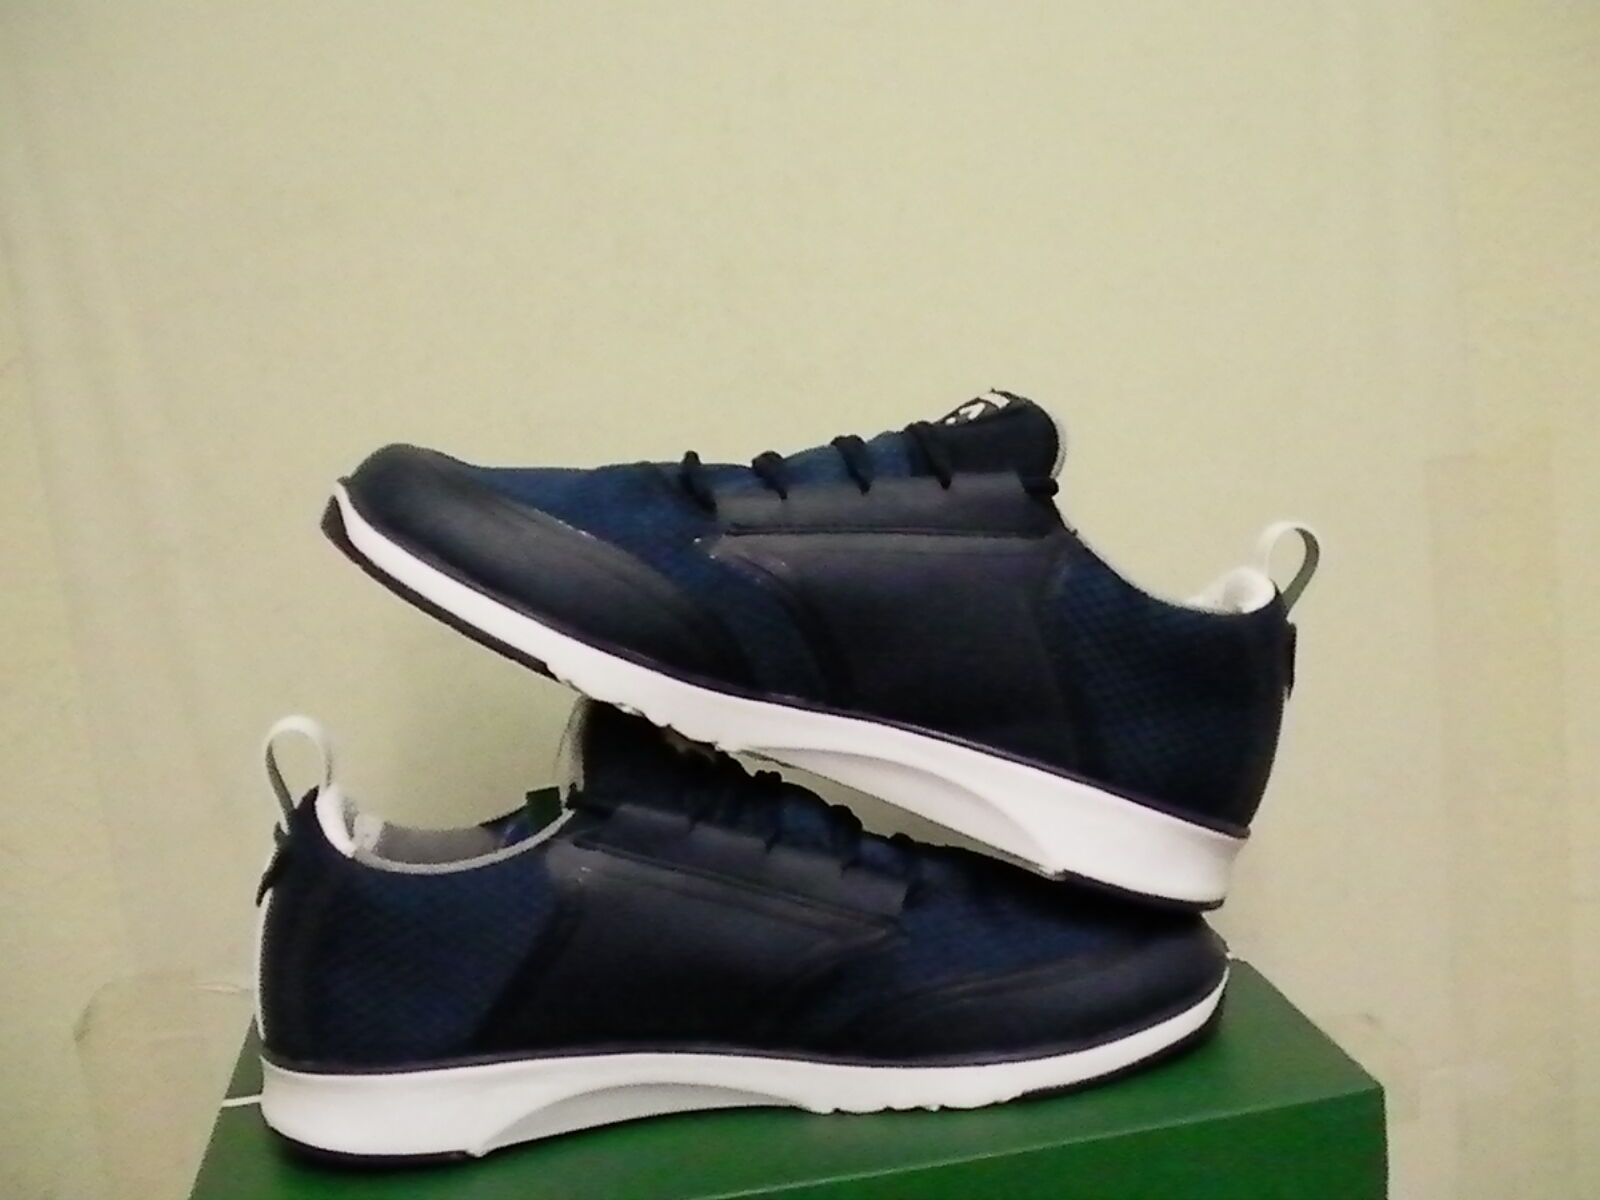 Lacoste shoes L.IGHT LT12 LT12 LT12 spm txt/syn dark blue training size 7 new with box 8ce792